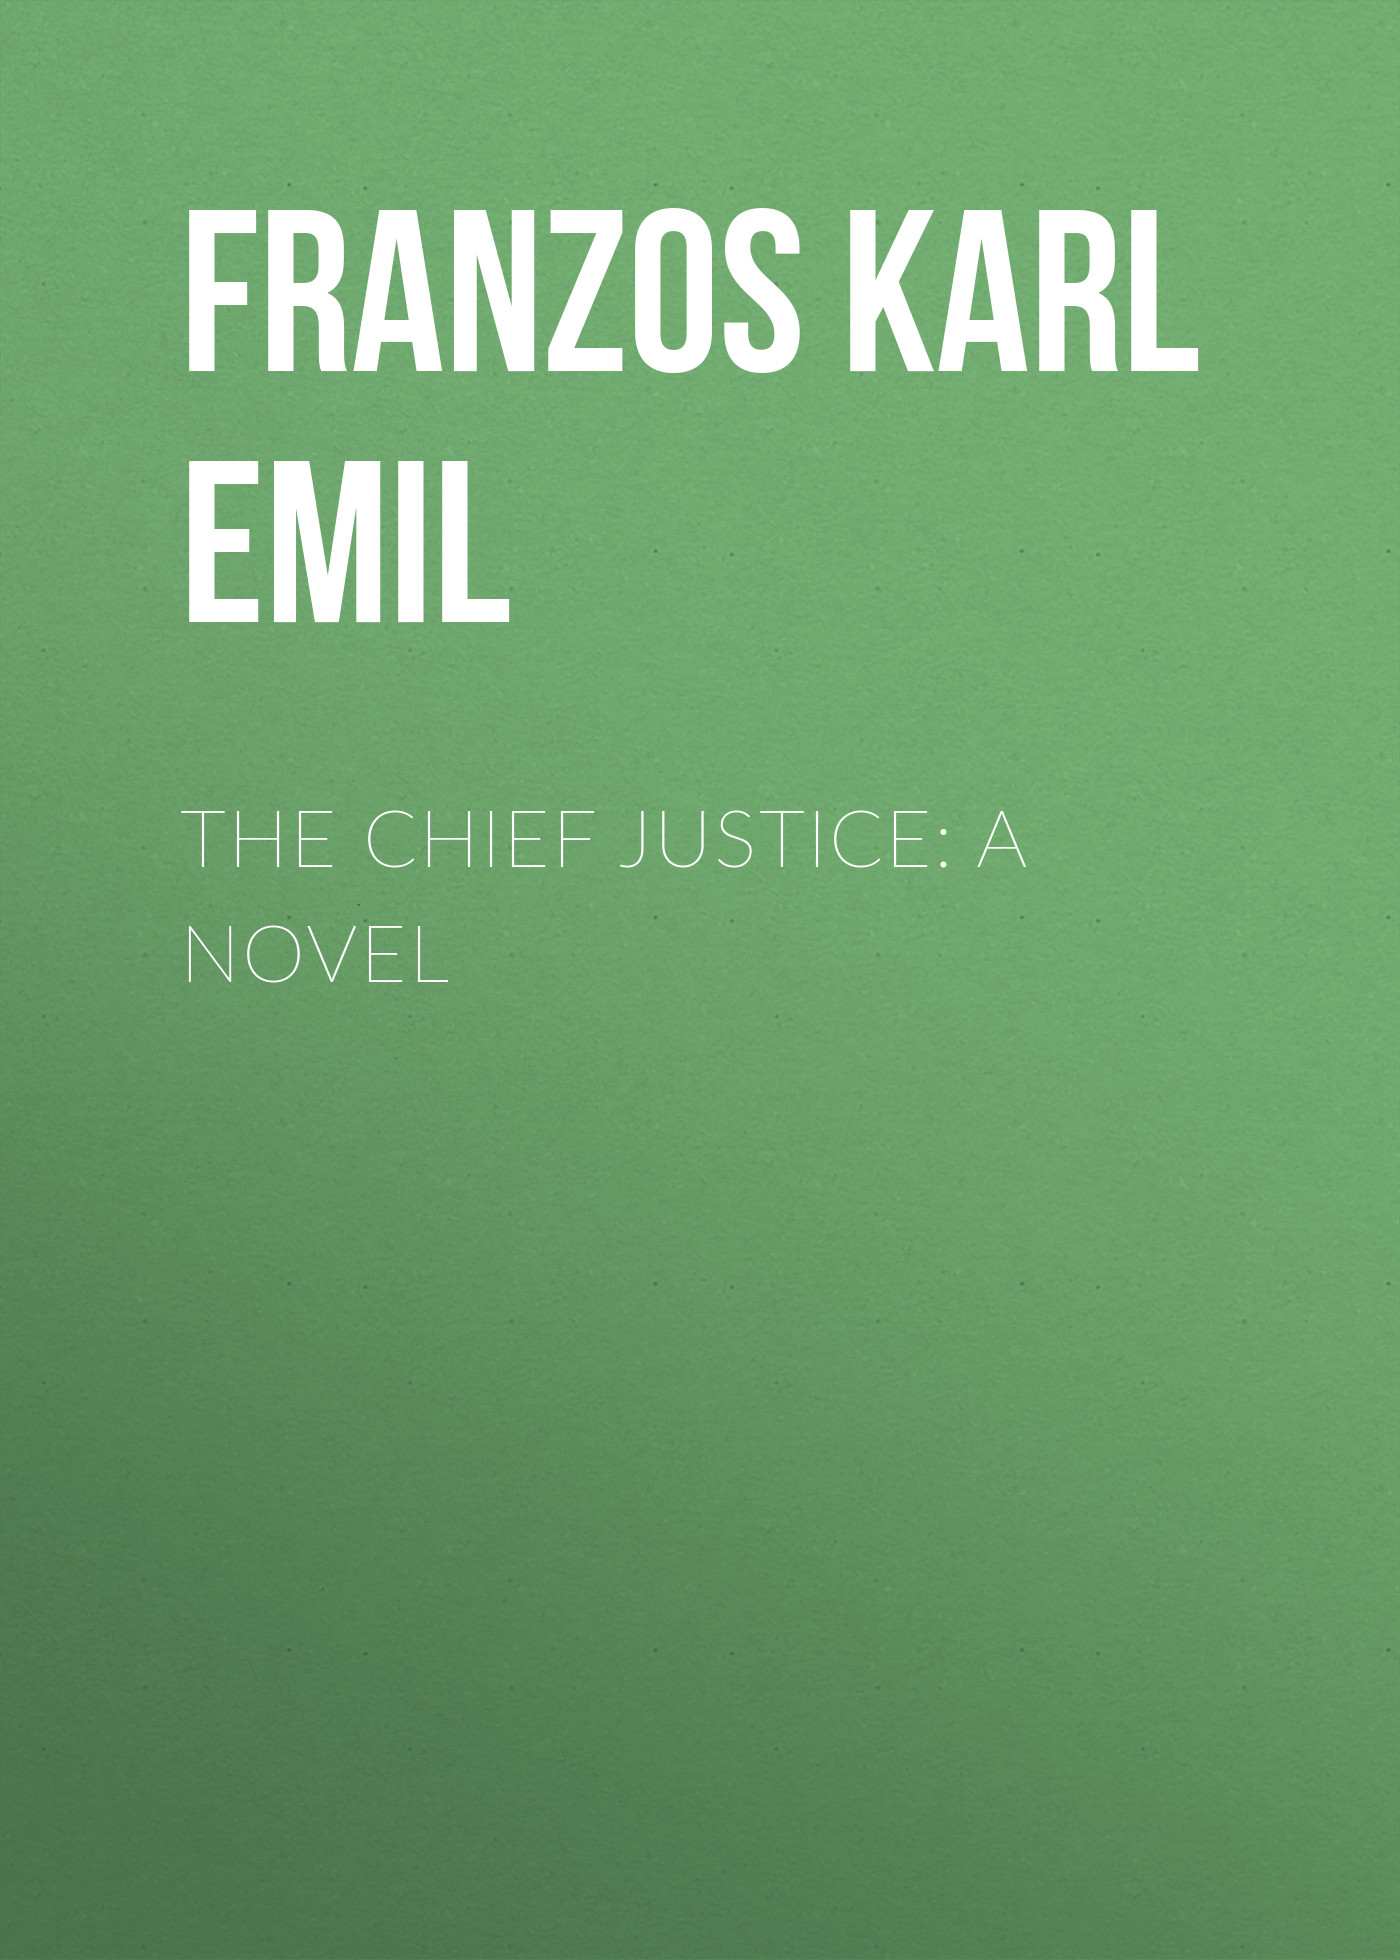 Franzos Karl Emil The Chief Justice: A Novel restorative justice for juveniles